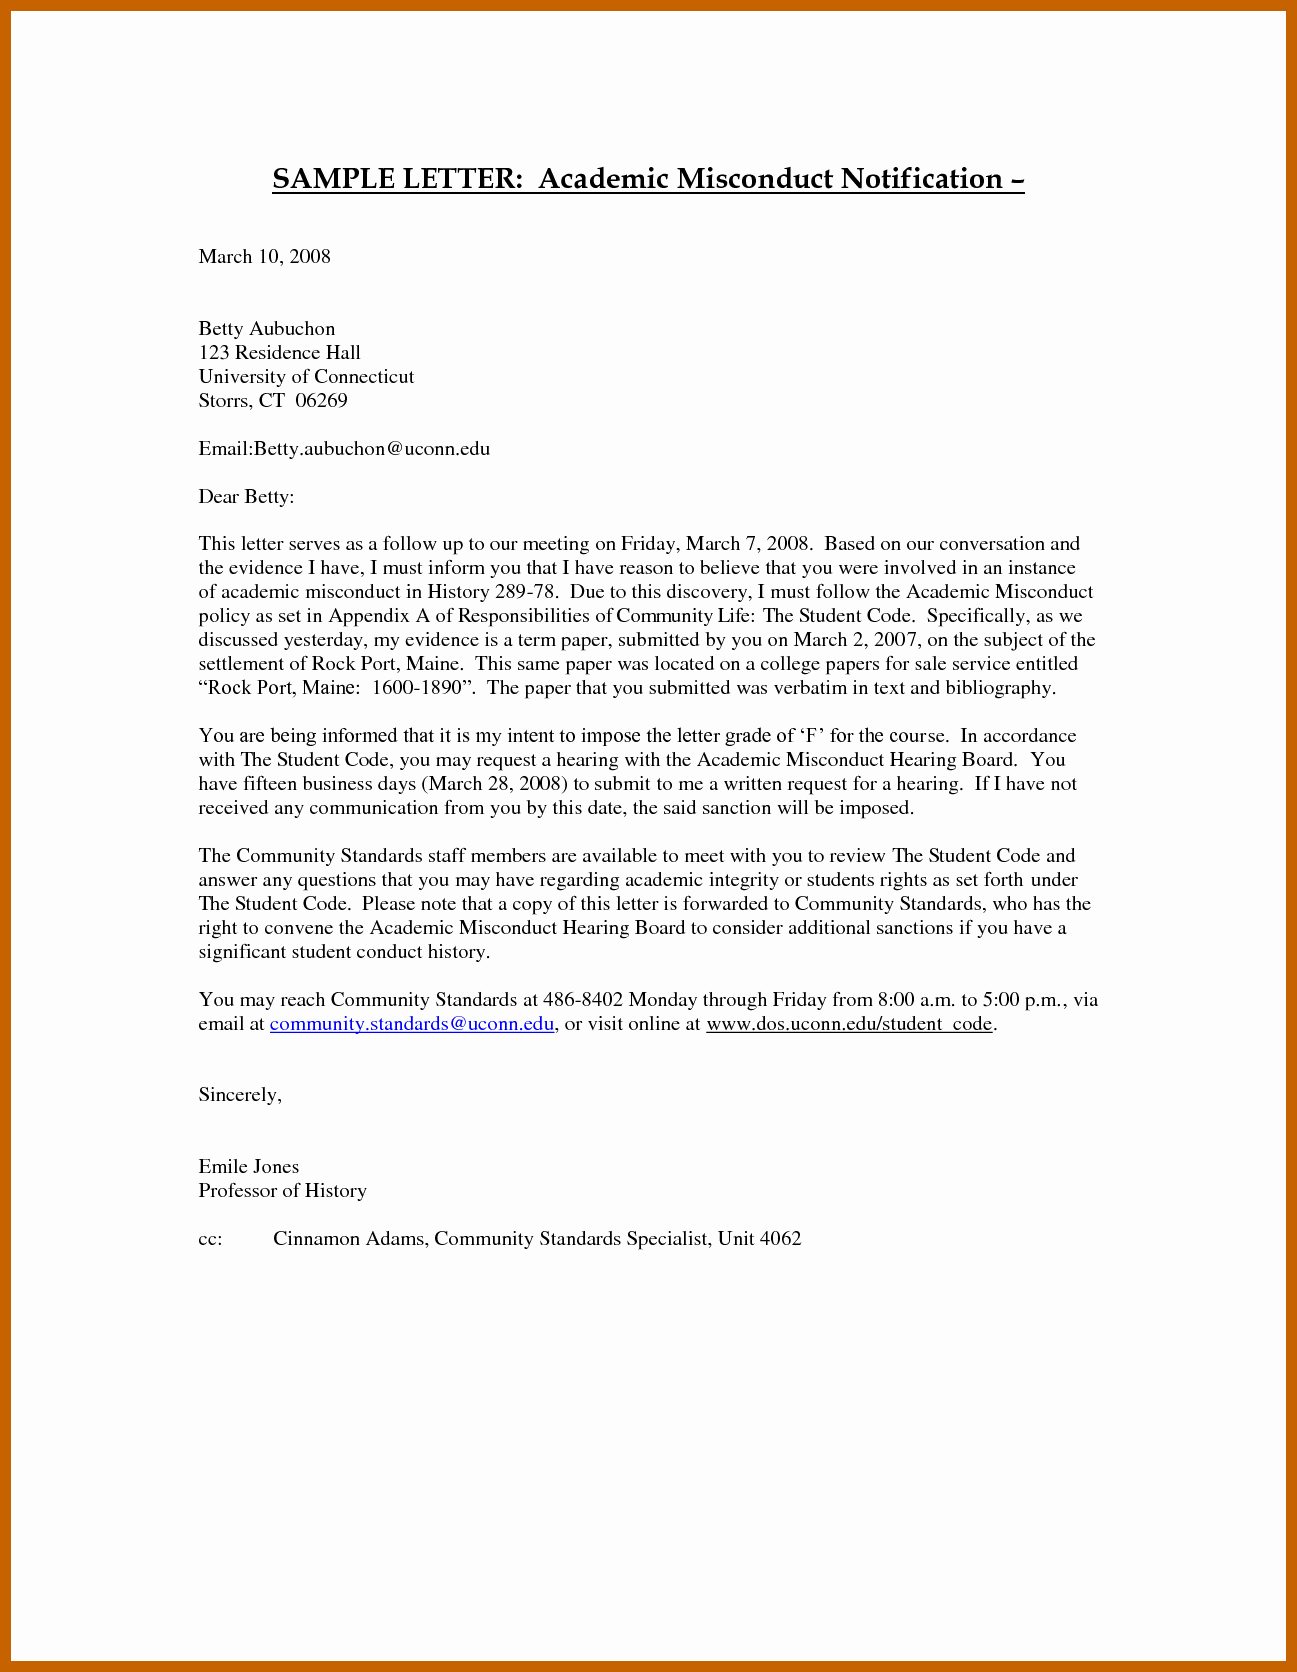 Reference Check Email Template Inspirational 2 3 College Re Mendation Letter Sample